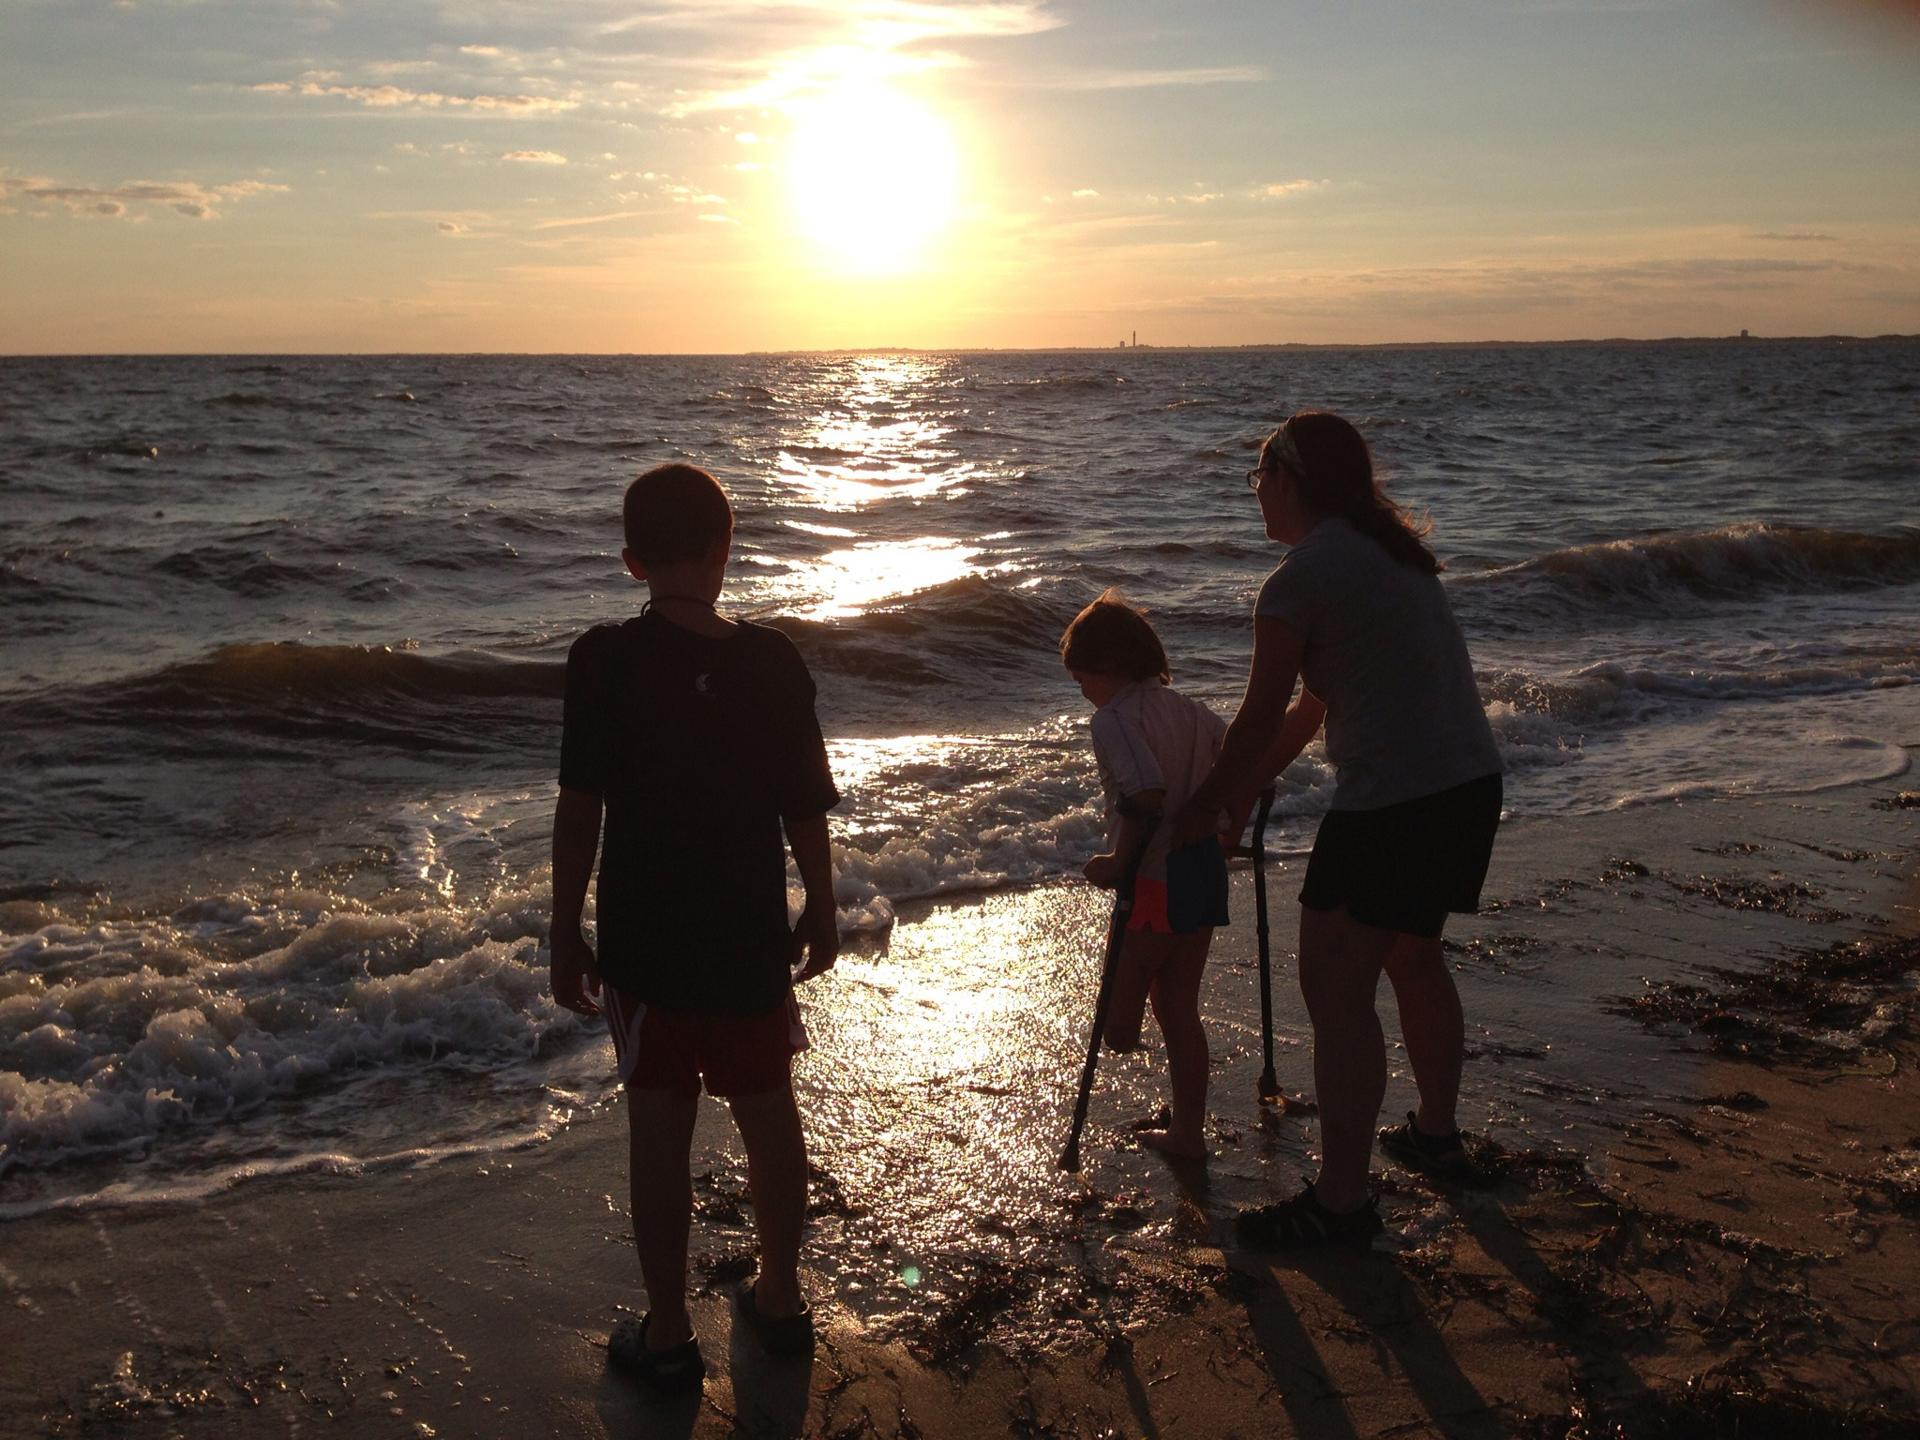 The Richards walked along Truro's shore in August. The summer routine, often a trip to New Hampshire, took on a different meaning without Martin. They needed new memories.